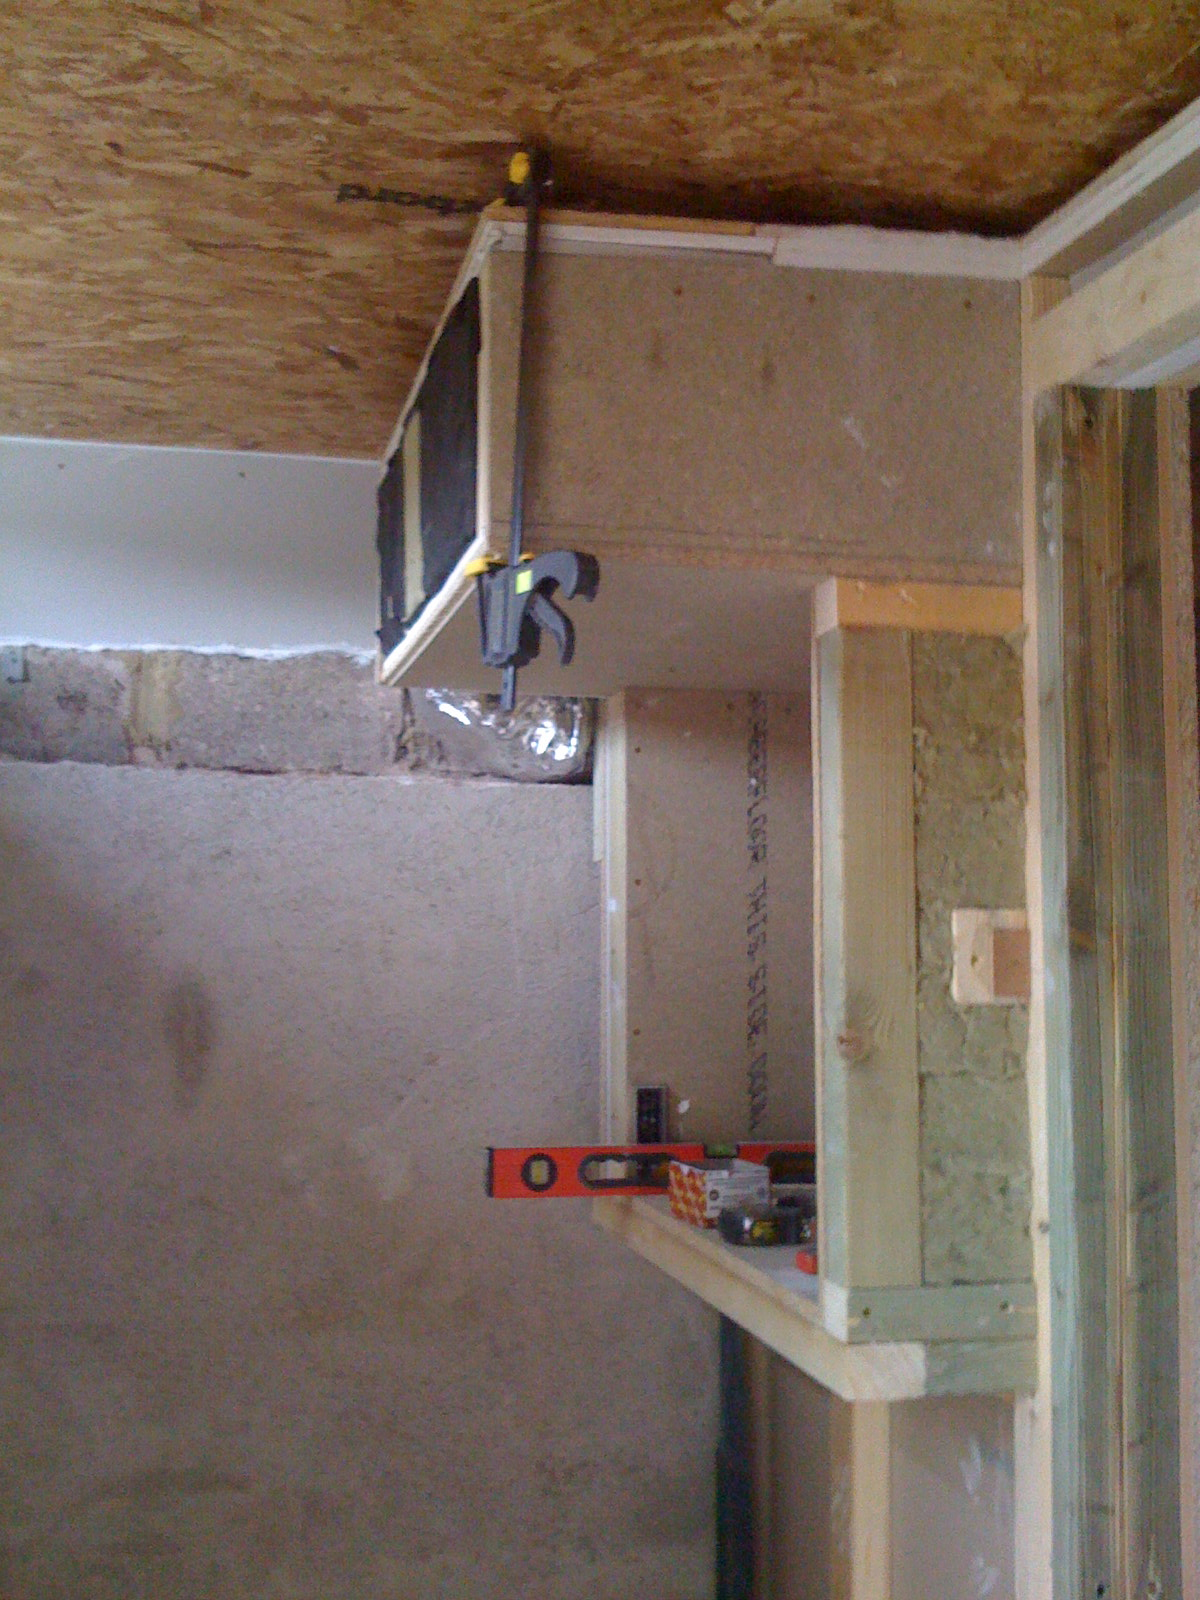 Ceiling duct, drawing air into the live room air supply pipe